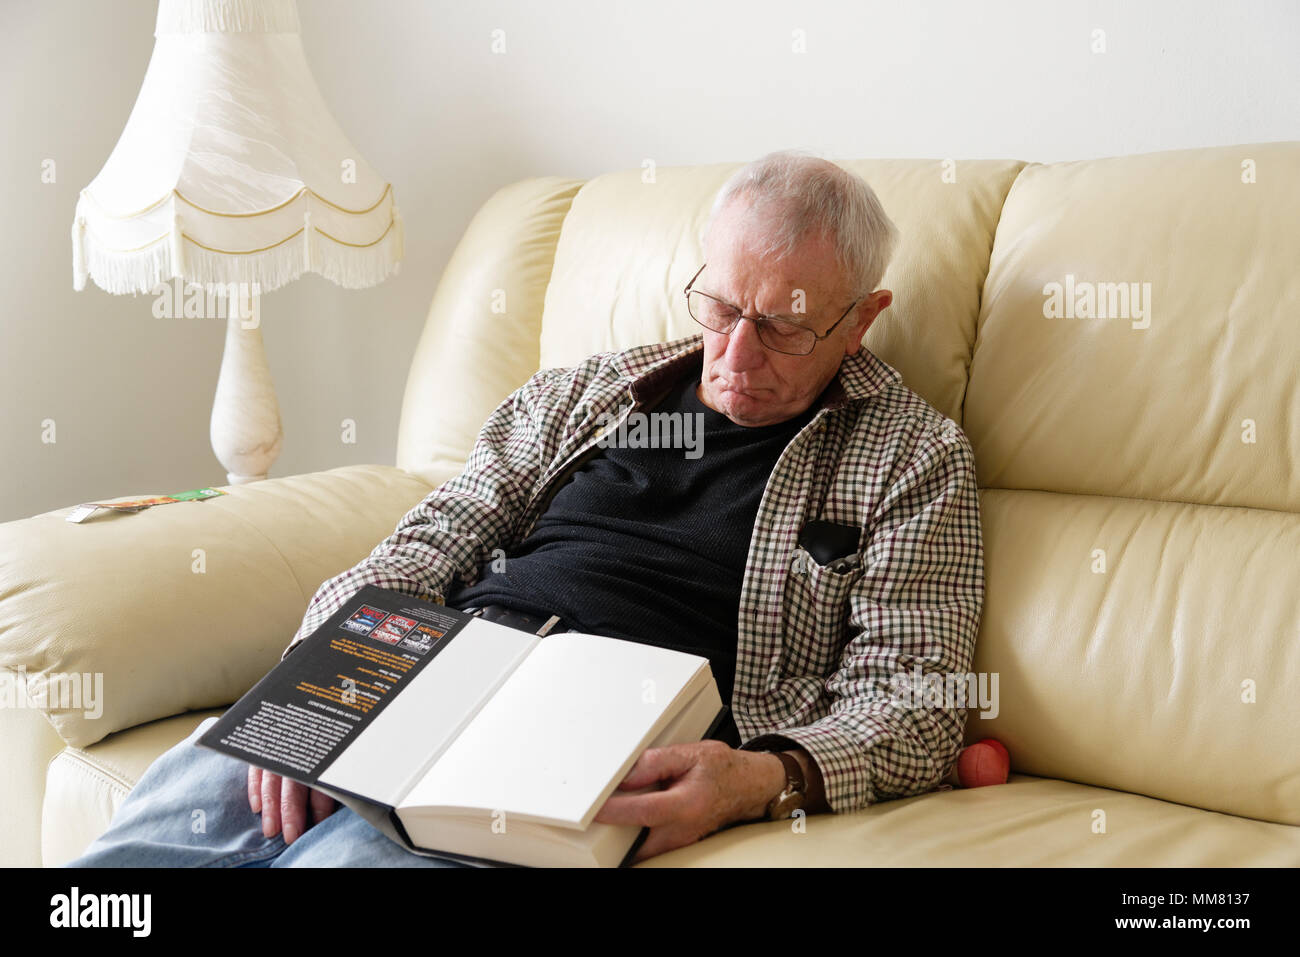 Anolder man fallen asleep on the sofa while reading a book - Stock Image